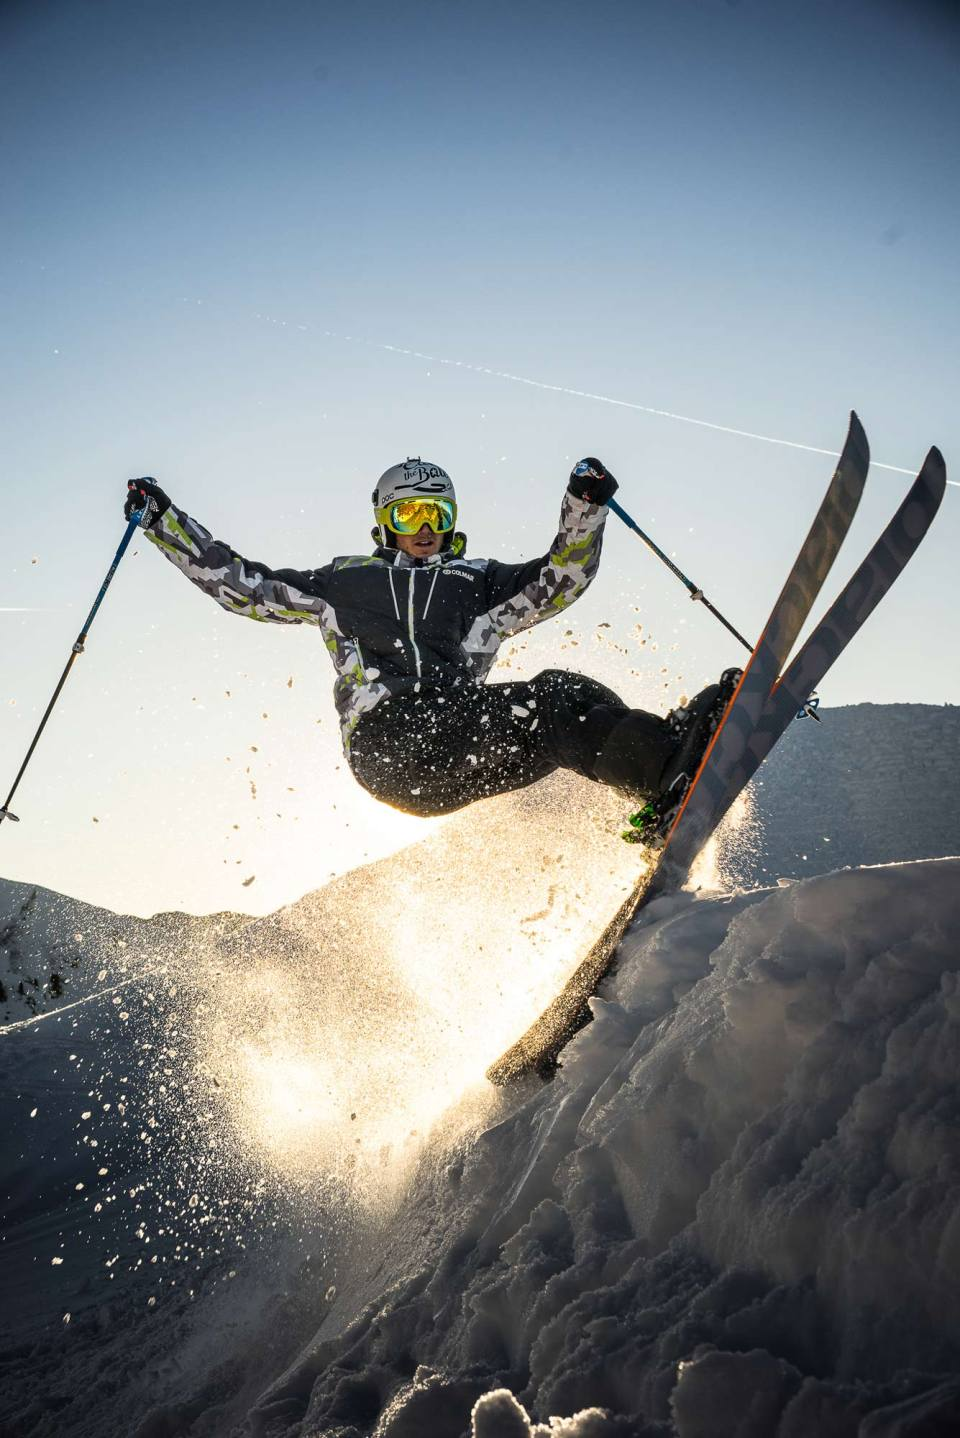 luca tribondeau - black crows anima - photo : Adrian Krainer / Riesneralm